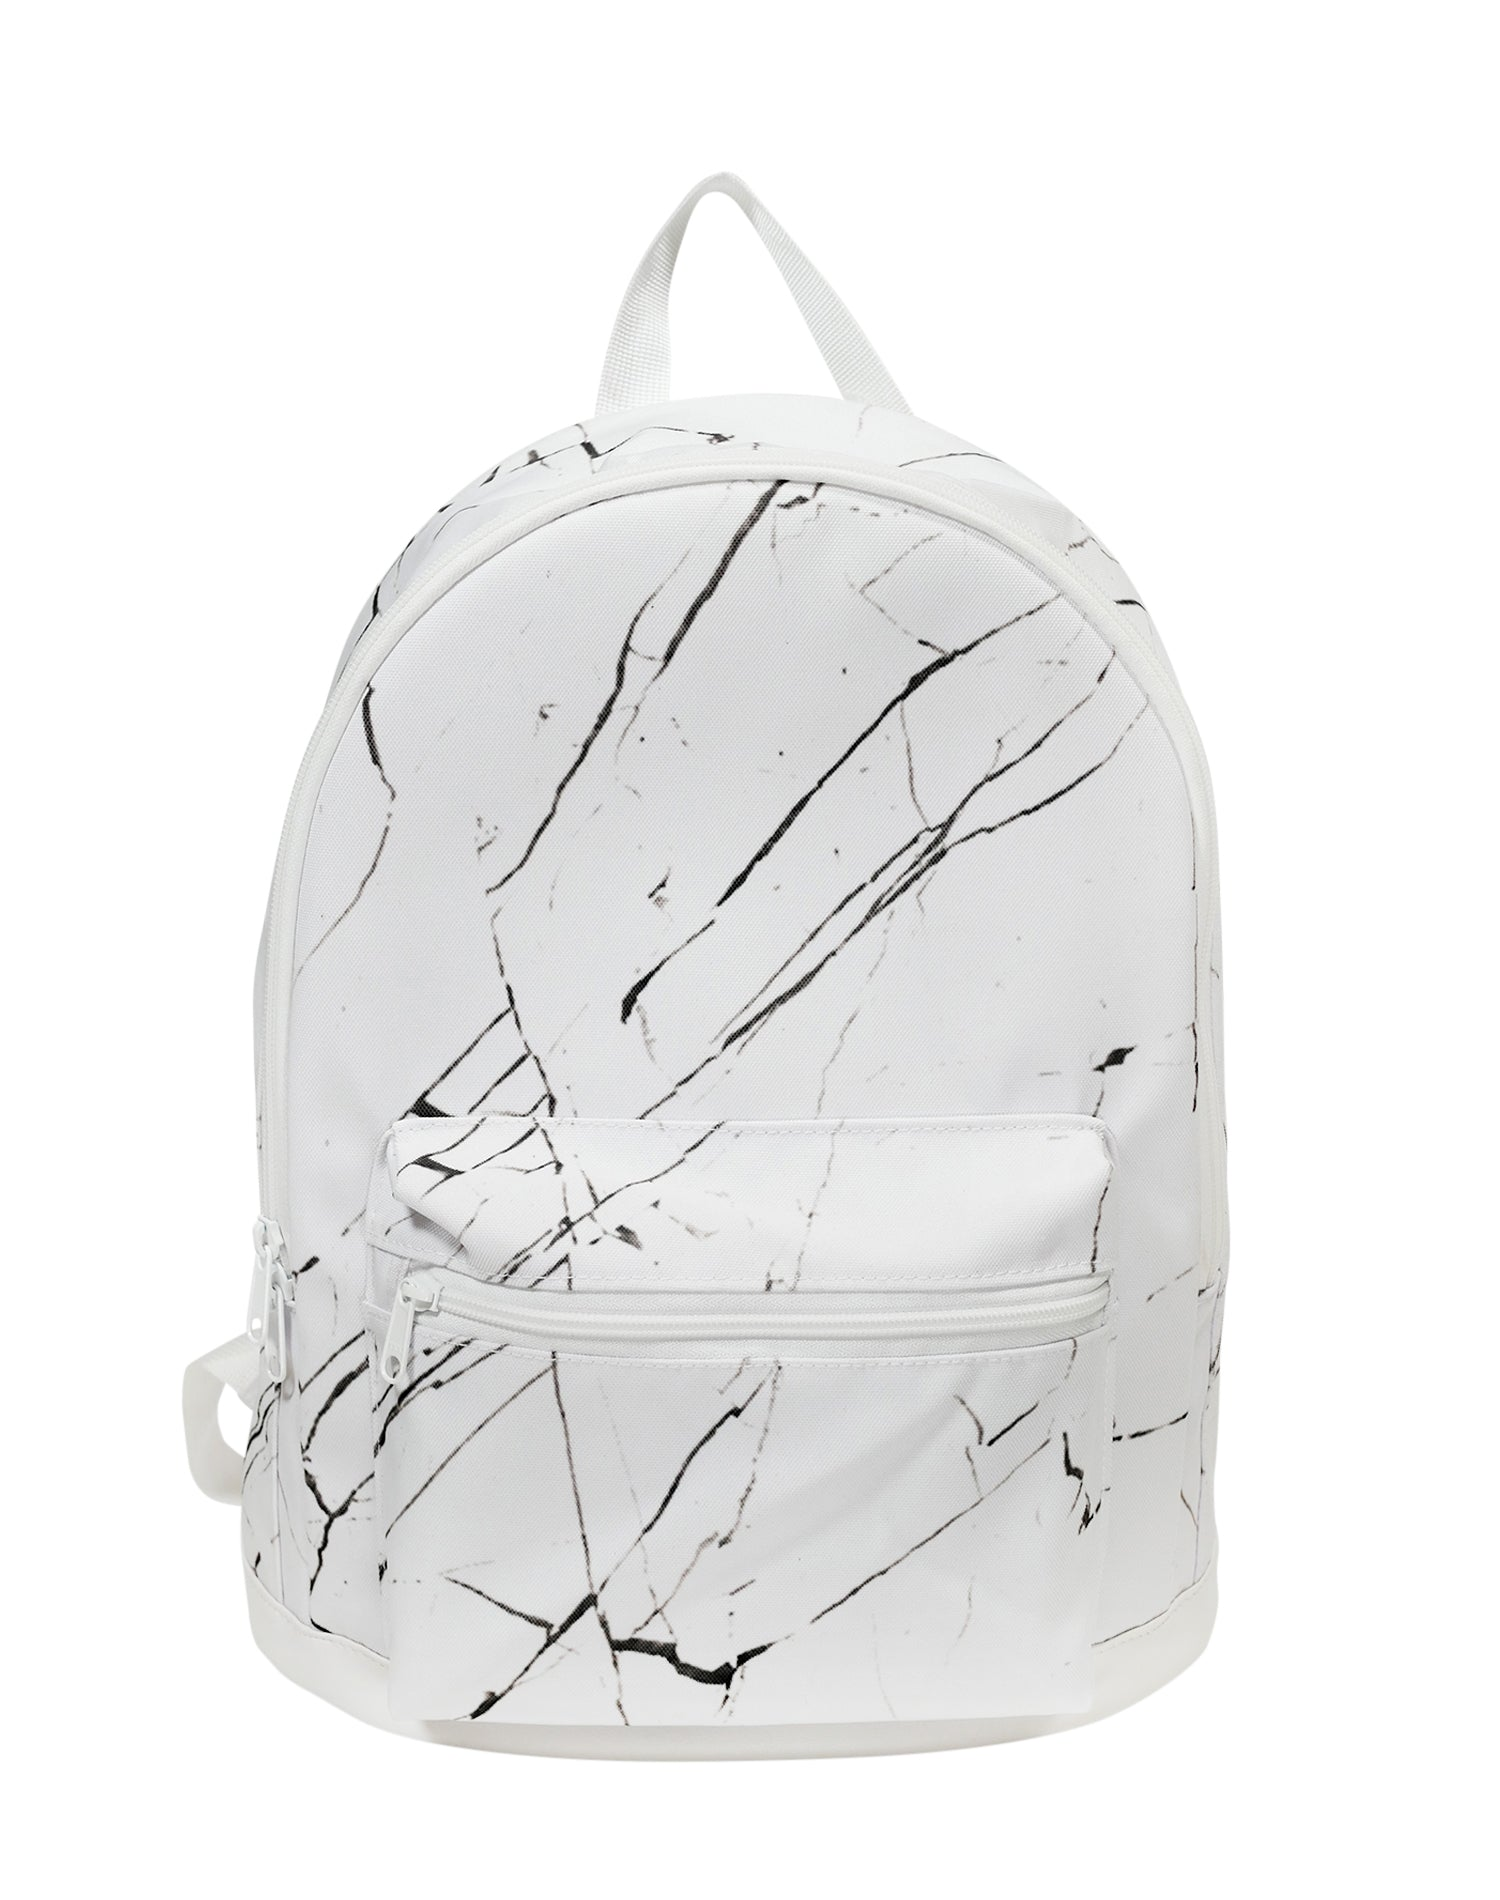 White Marble Cotton Canvas Backpack.白色大理石棉帆布背囊